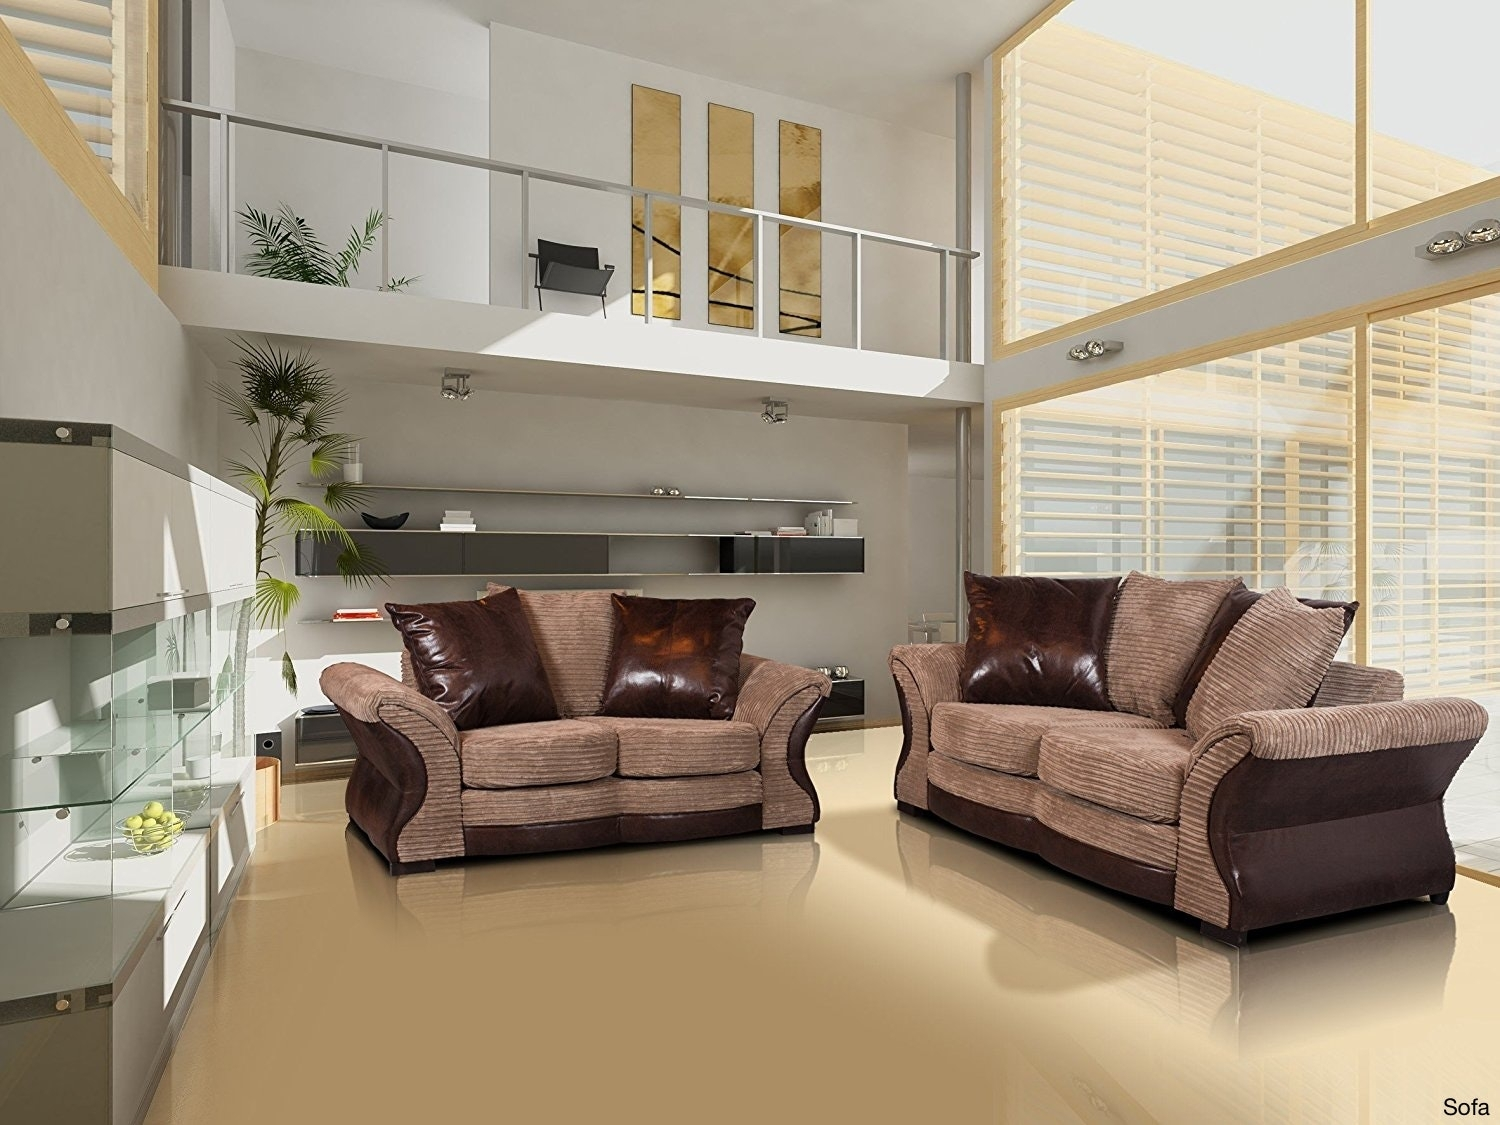 Sectional Sofas Under 400 - Mforum with Sectional Sofas Under 400 (Image 10 of 15)